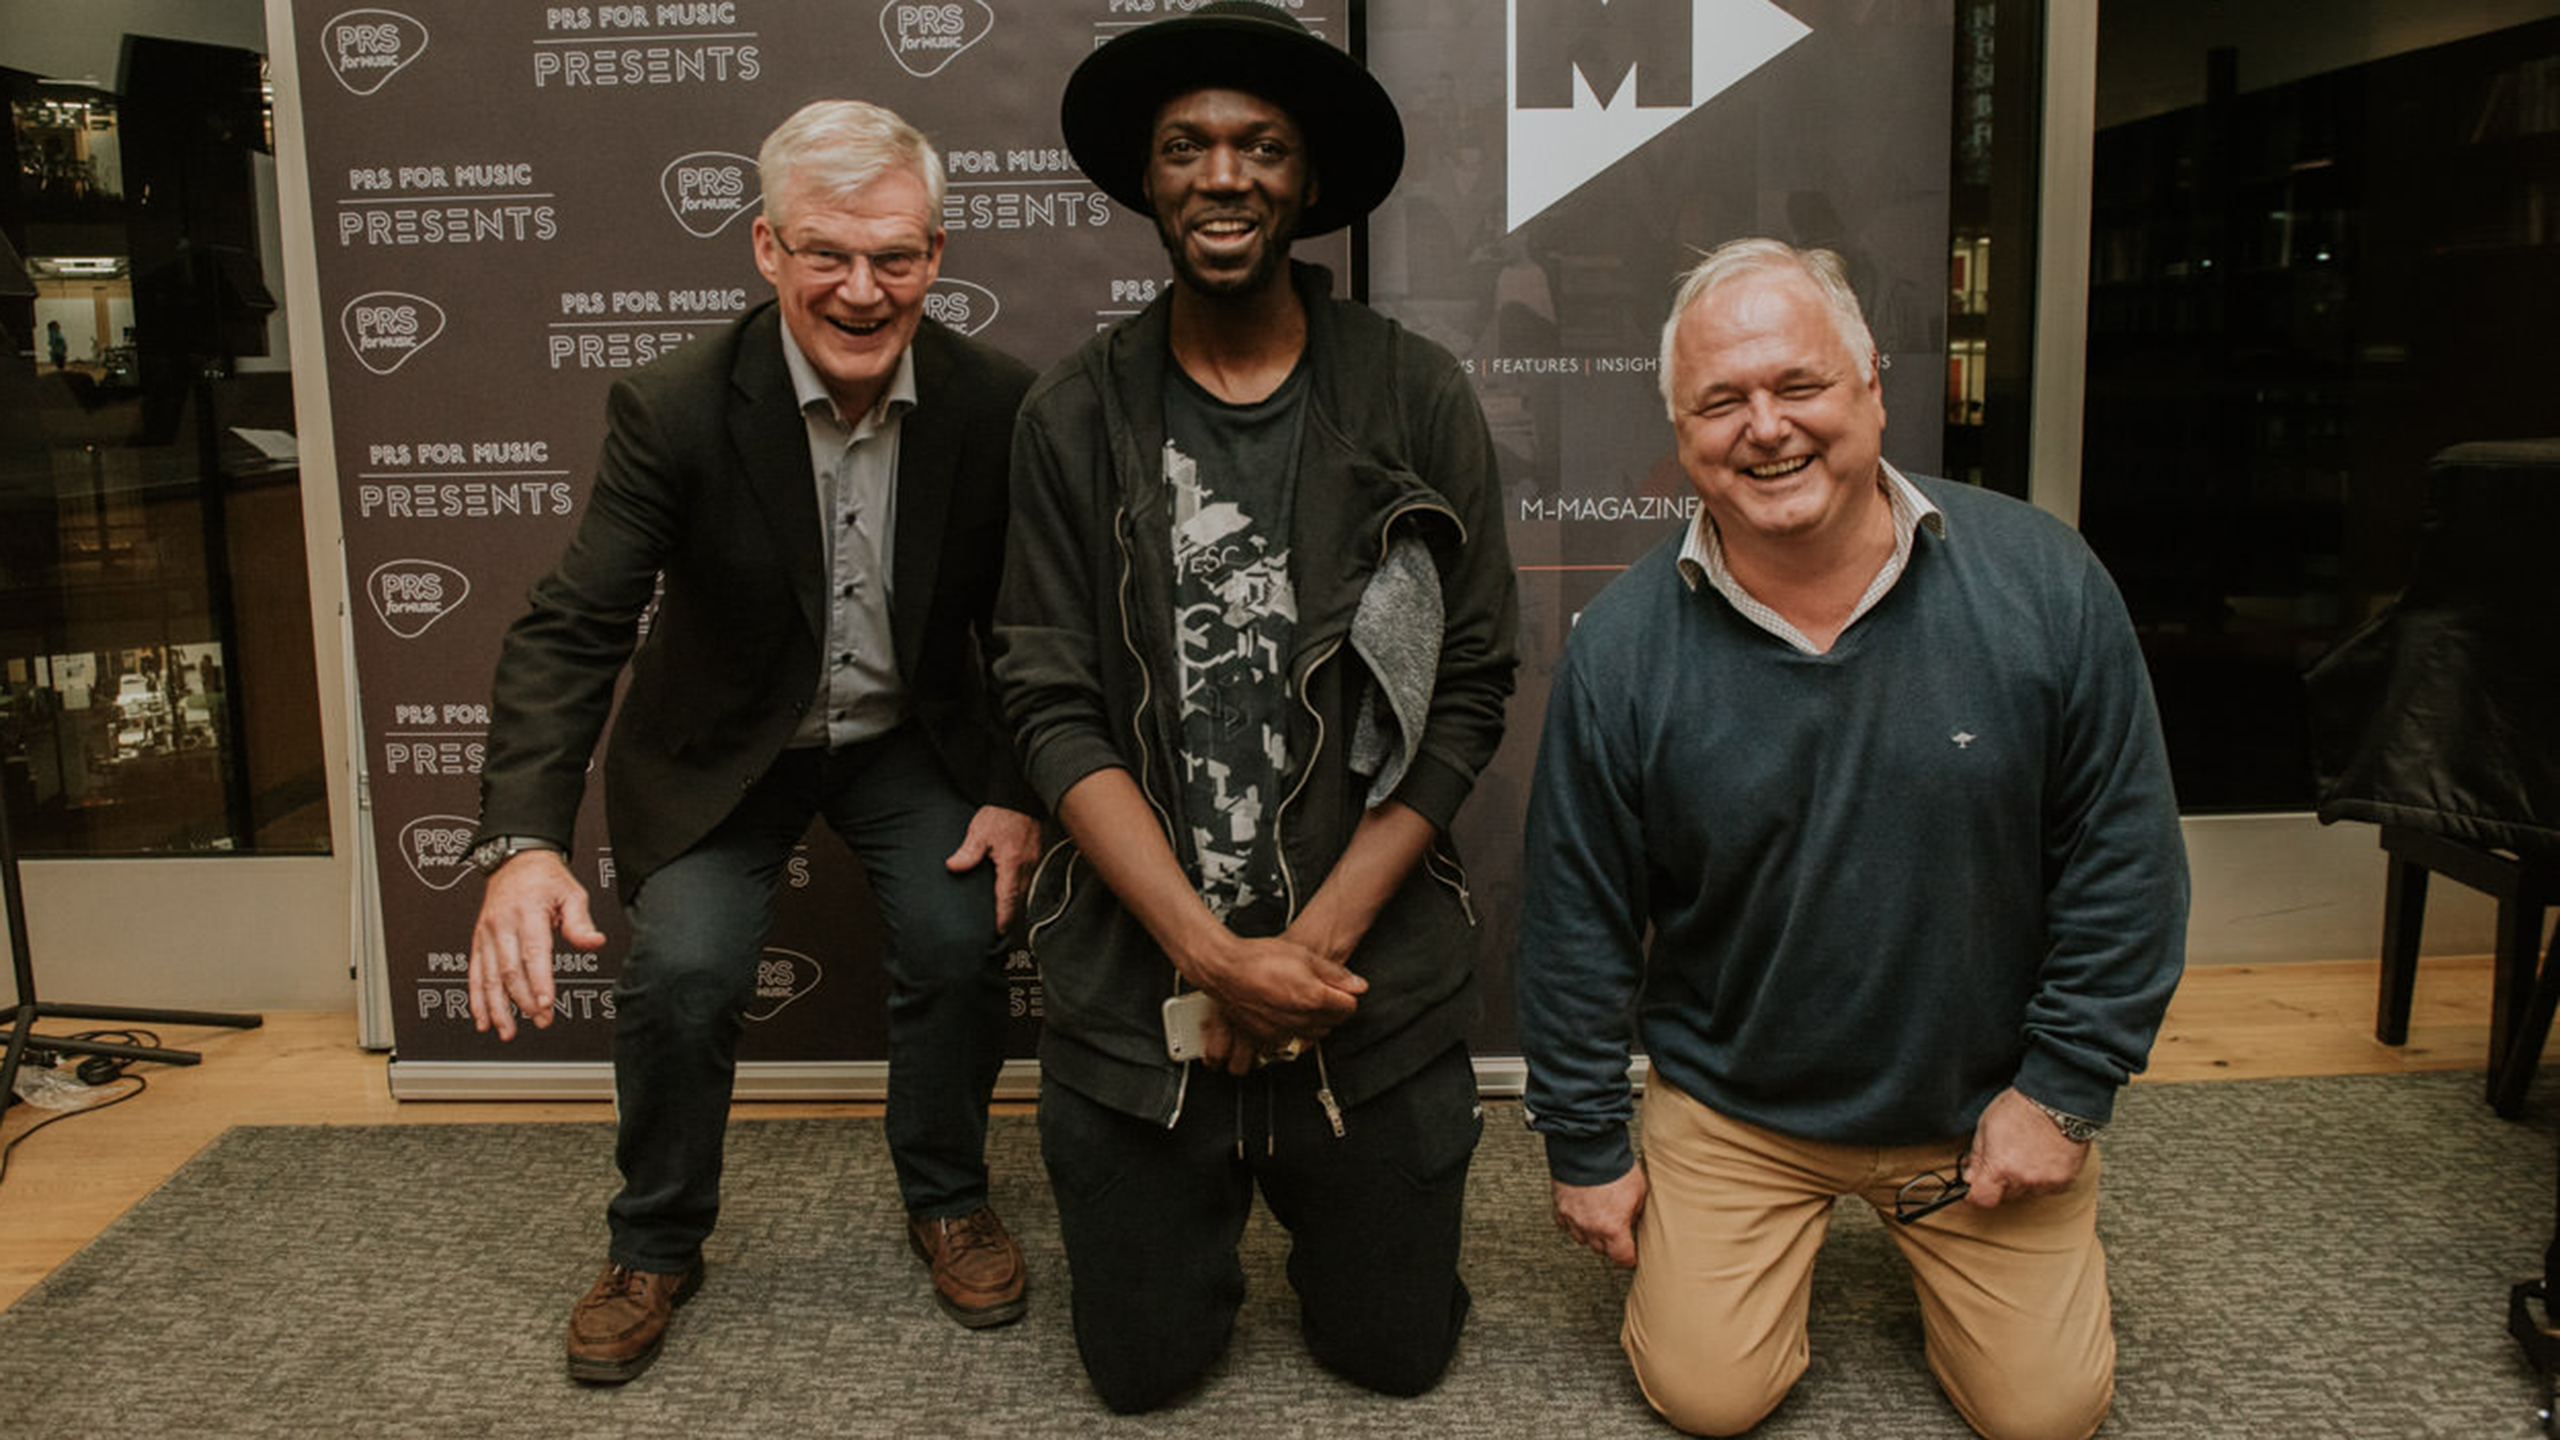 Robert Ashcroft (PRS), Baloji and Christophe Depreter, CEO of SABAM at PRS for Music Presents